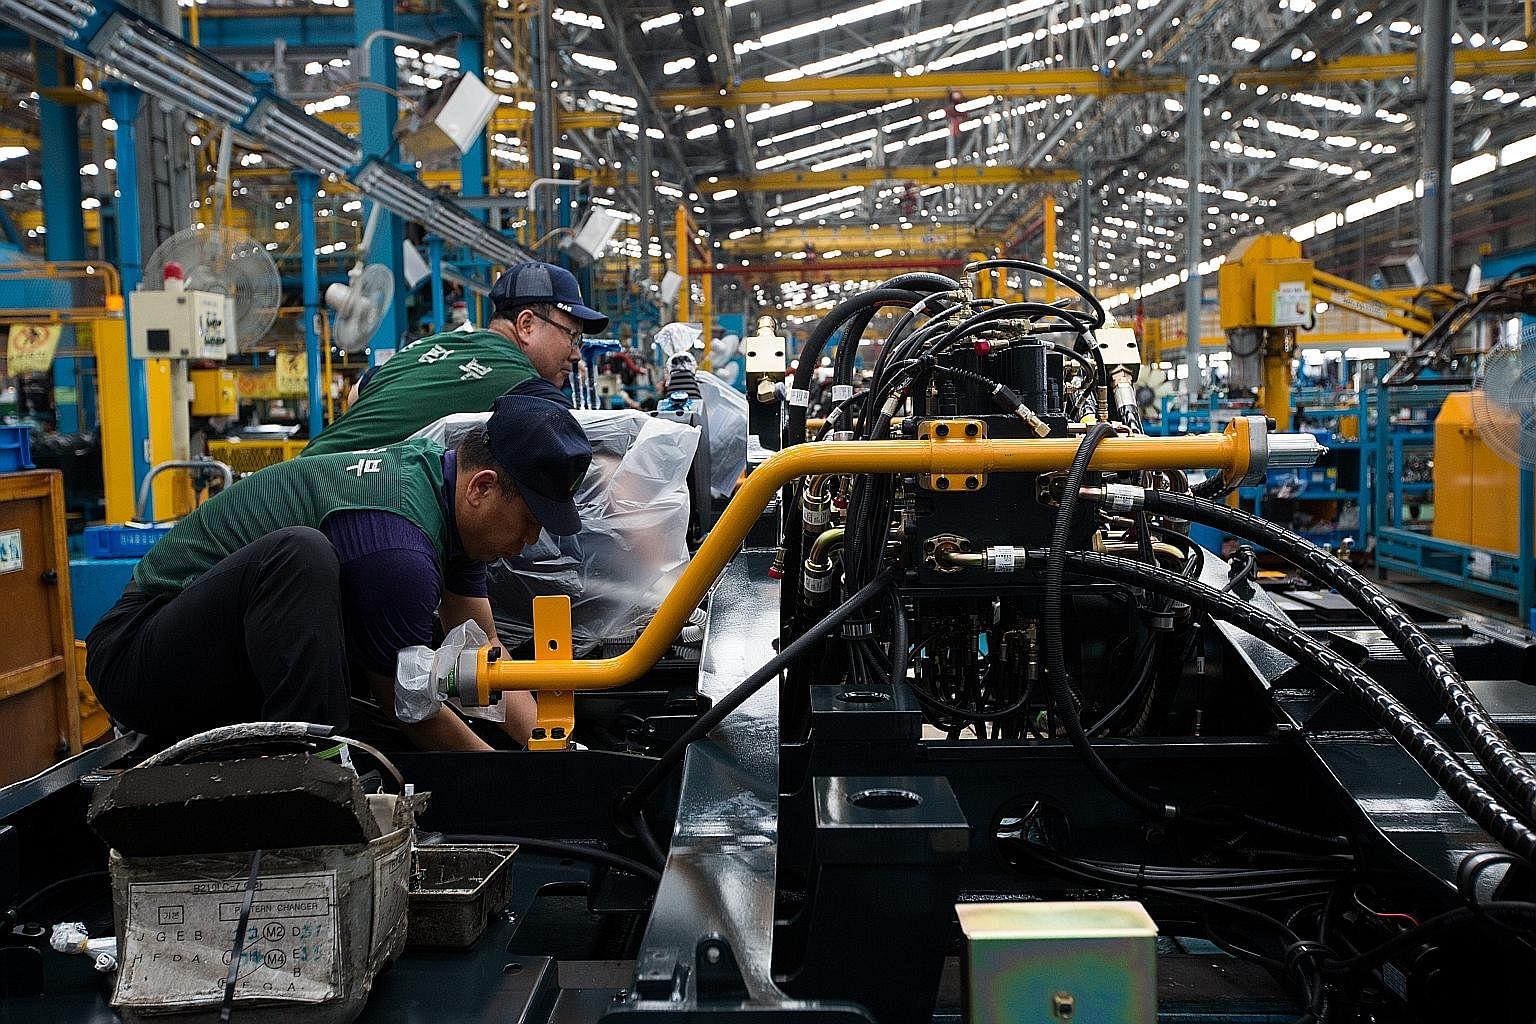 An excavator production line at Hyundai Heavy Industries' plant in Ulsan, South Korea. After decades of robust growth, global productivity flatlined in the 1970s and 1980s, only to surge ahead again in the 1990s and early 2000s. But for the past deca